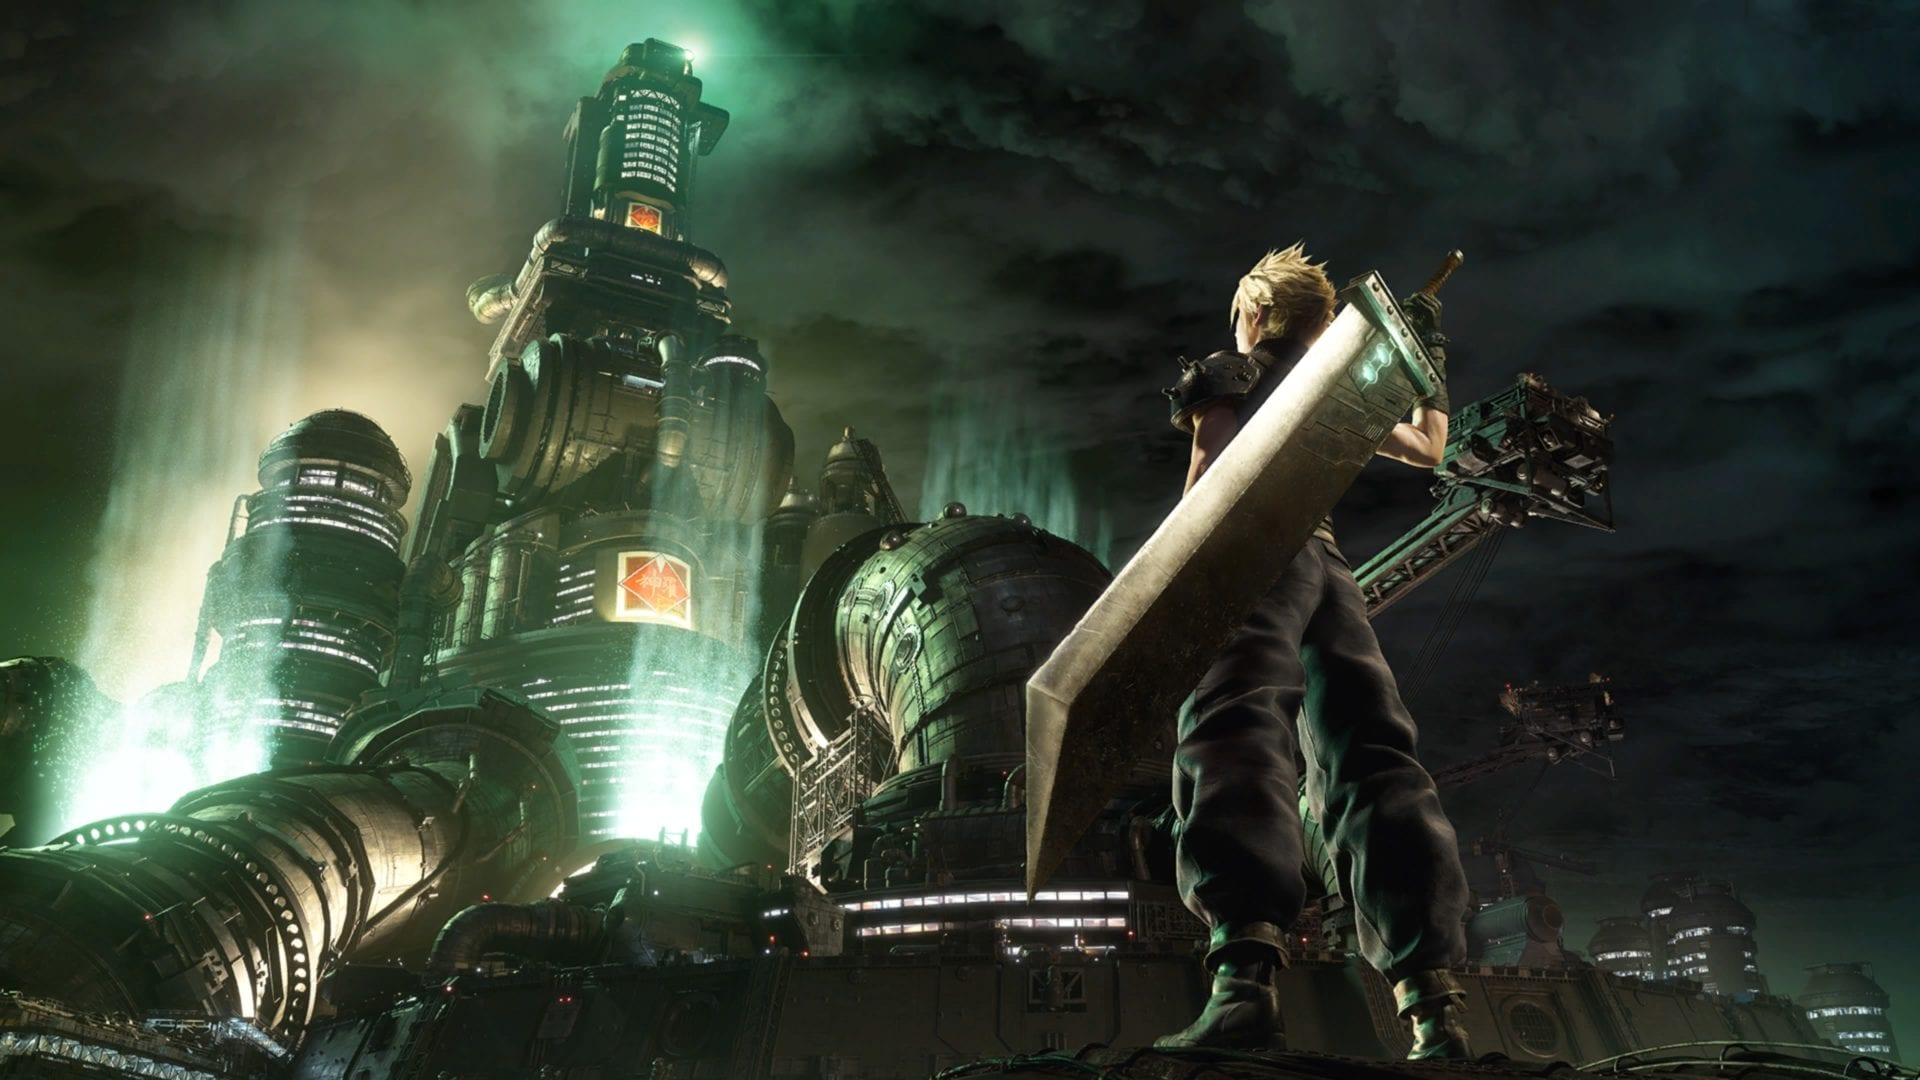 Final Fantasy 7 Remake How To Get Doomrats To Spawn Rat Problem